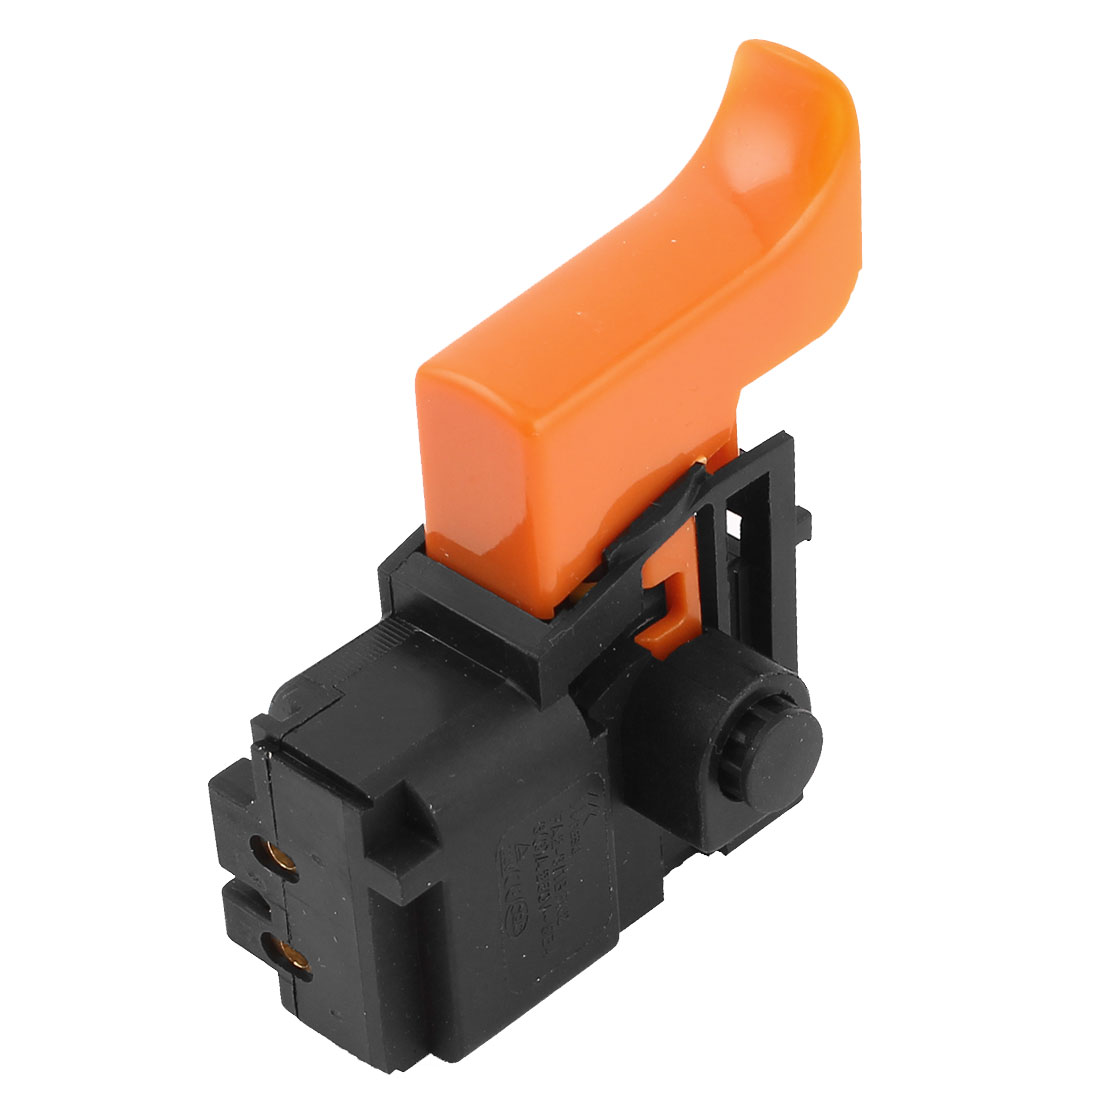 FA2-4/2BEK2 Black Orange SPDT Lock on Electric Tool Trigger Switch AC 250V 6(6)A